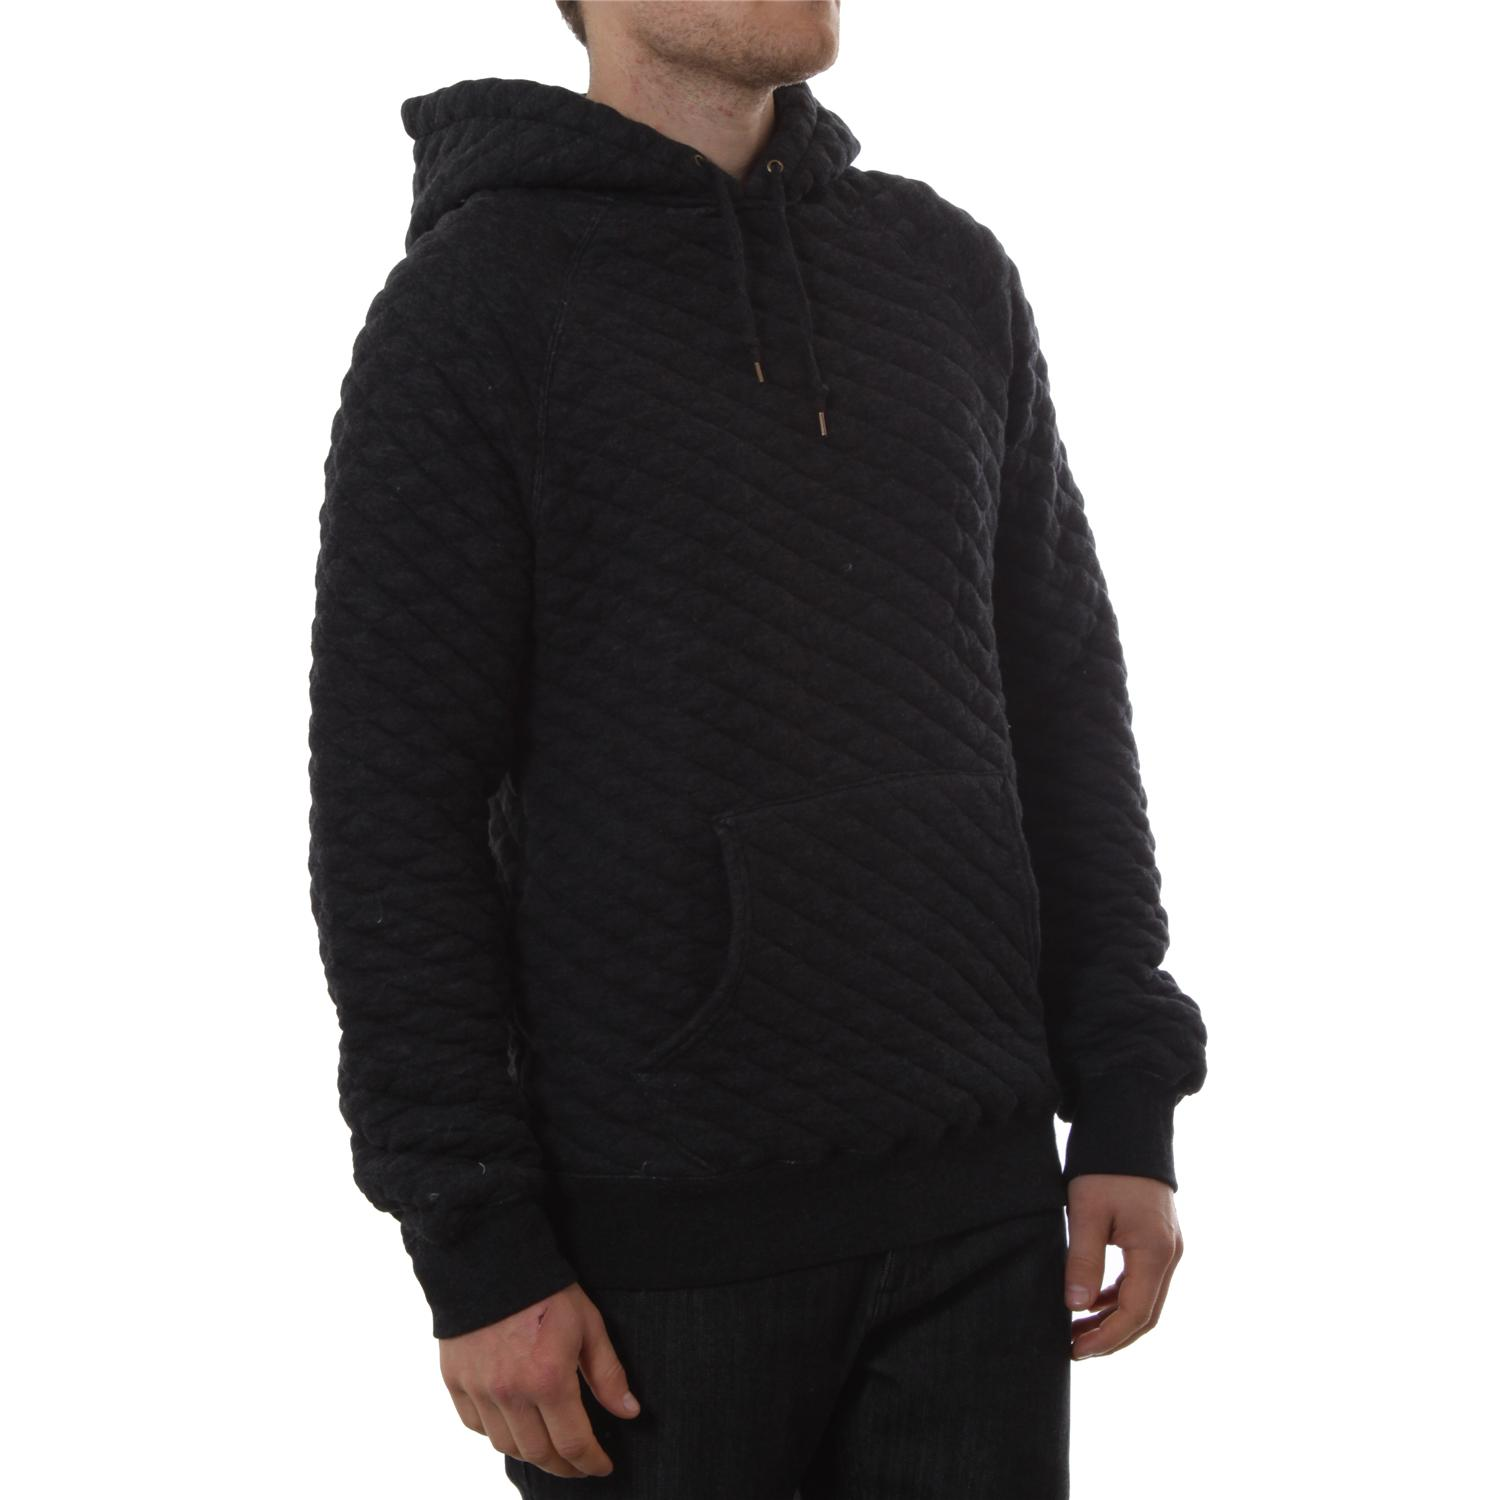 obey clothing creature comforts quilted pullover hoodie evo outlet. Black Bedroom Furniture Sets. Home Design Ideas